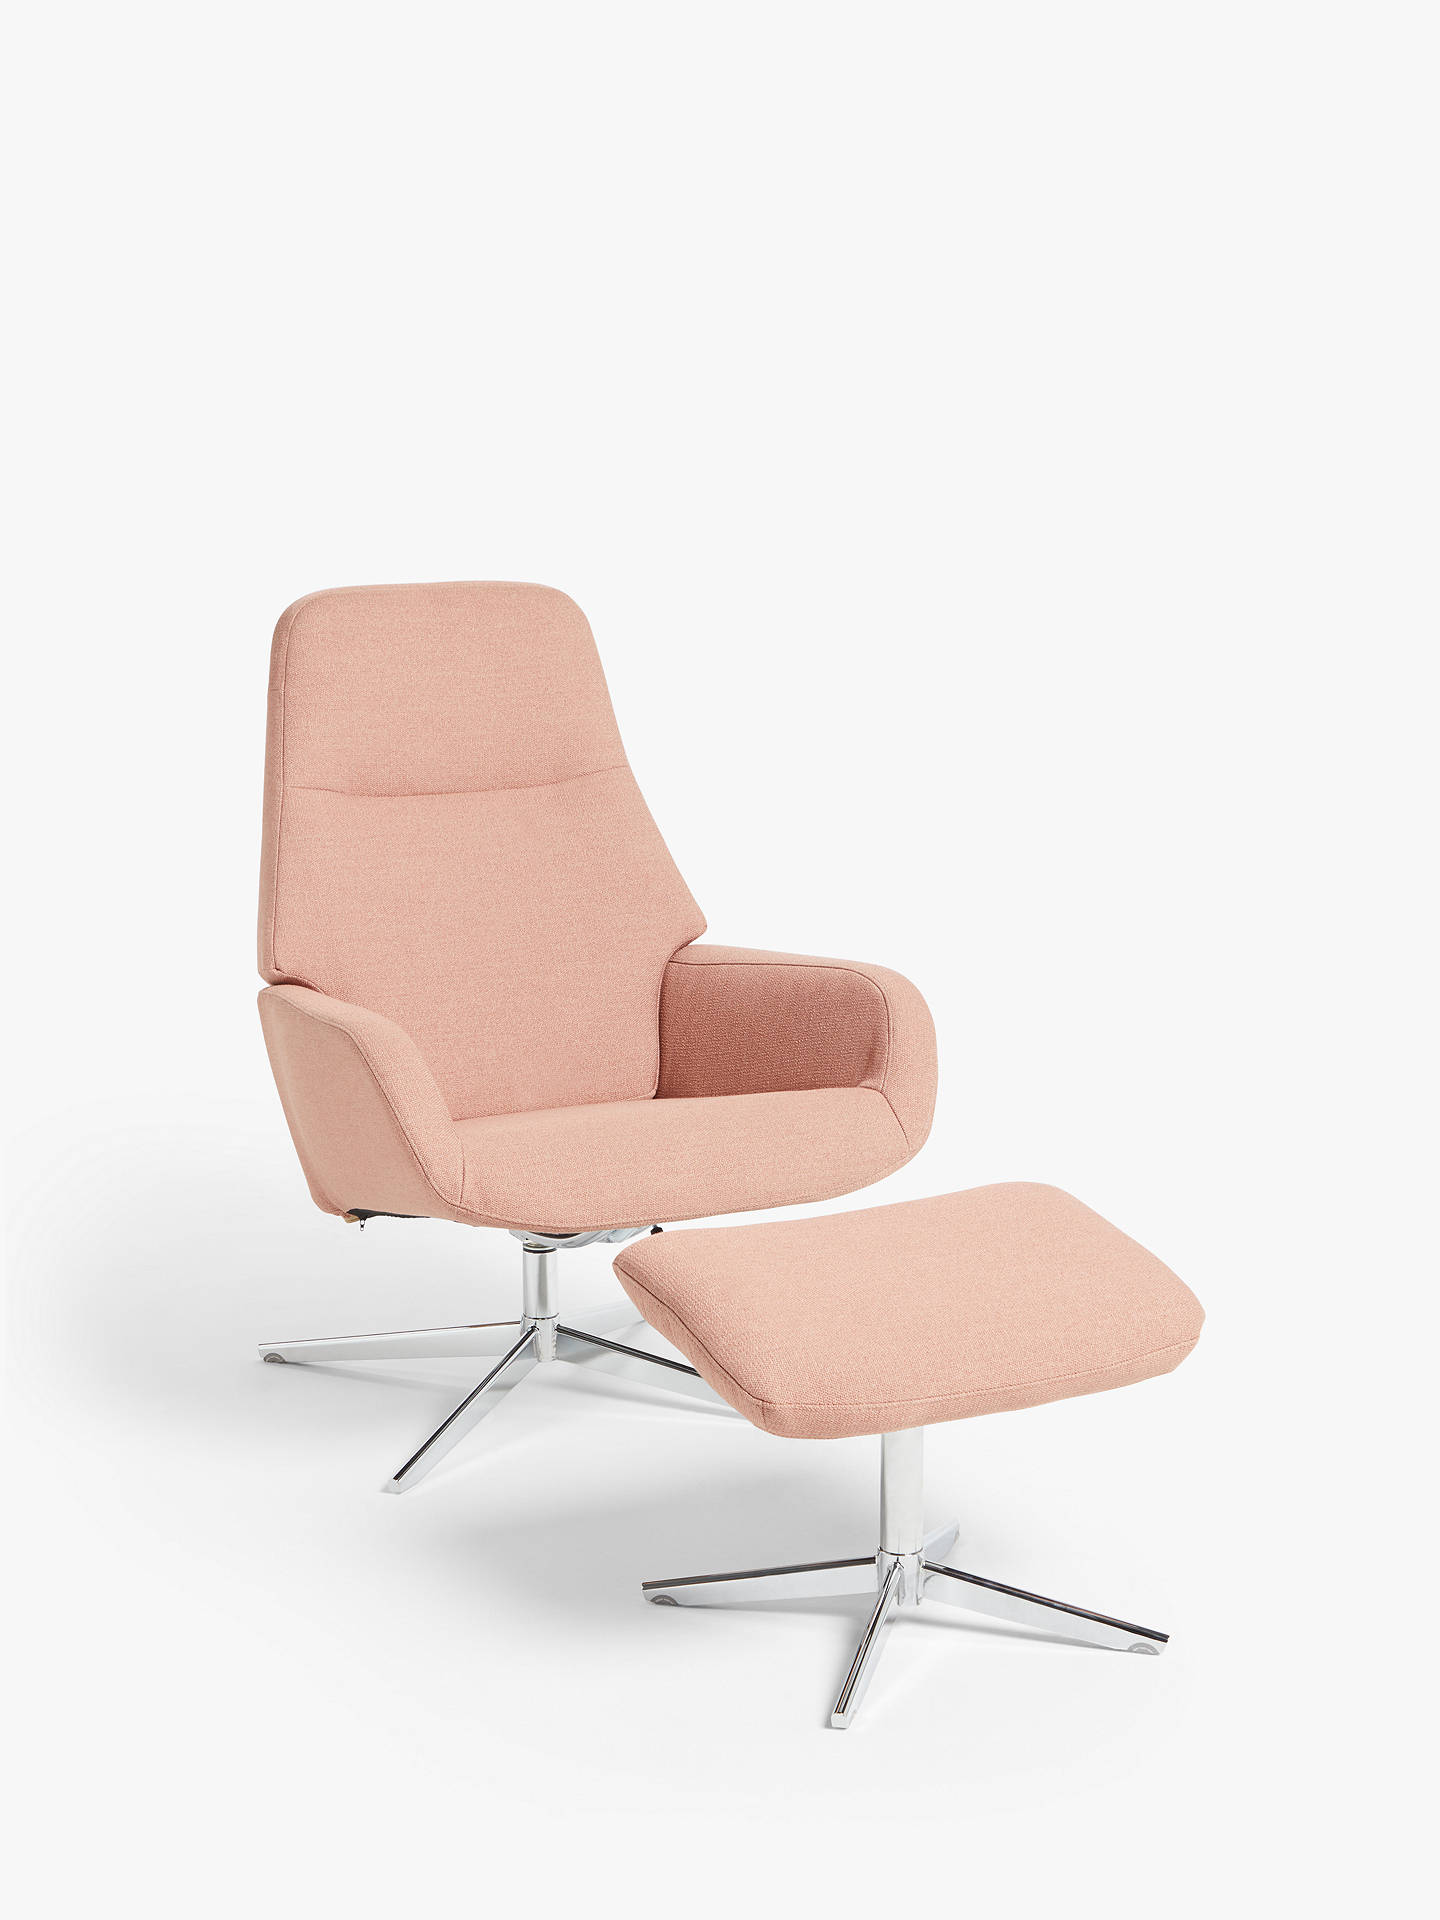 Enjoyable Design Project By John Lewis No 122 Reclining Chair With Dailytribune Chair Design For Home Dailytribuneorg